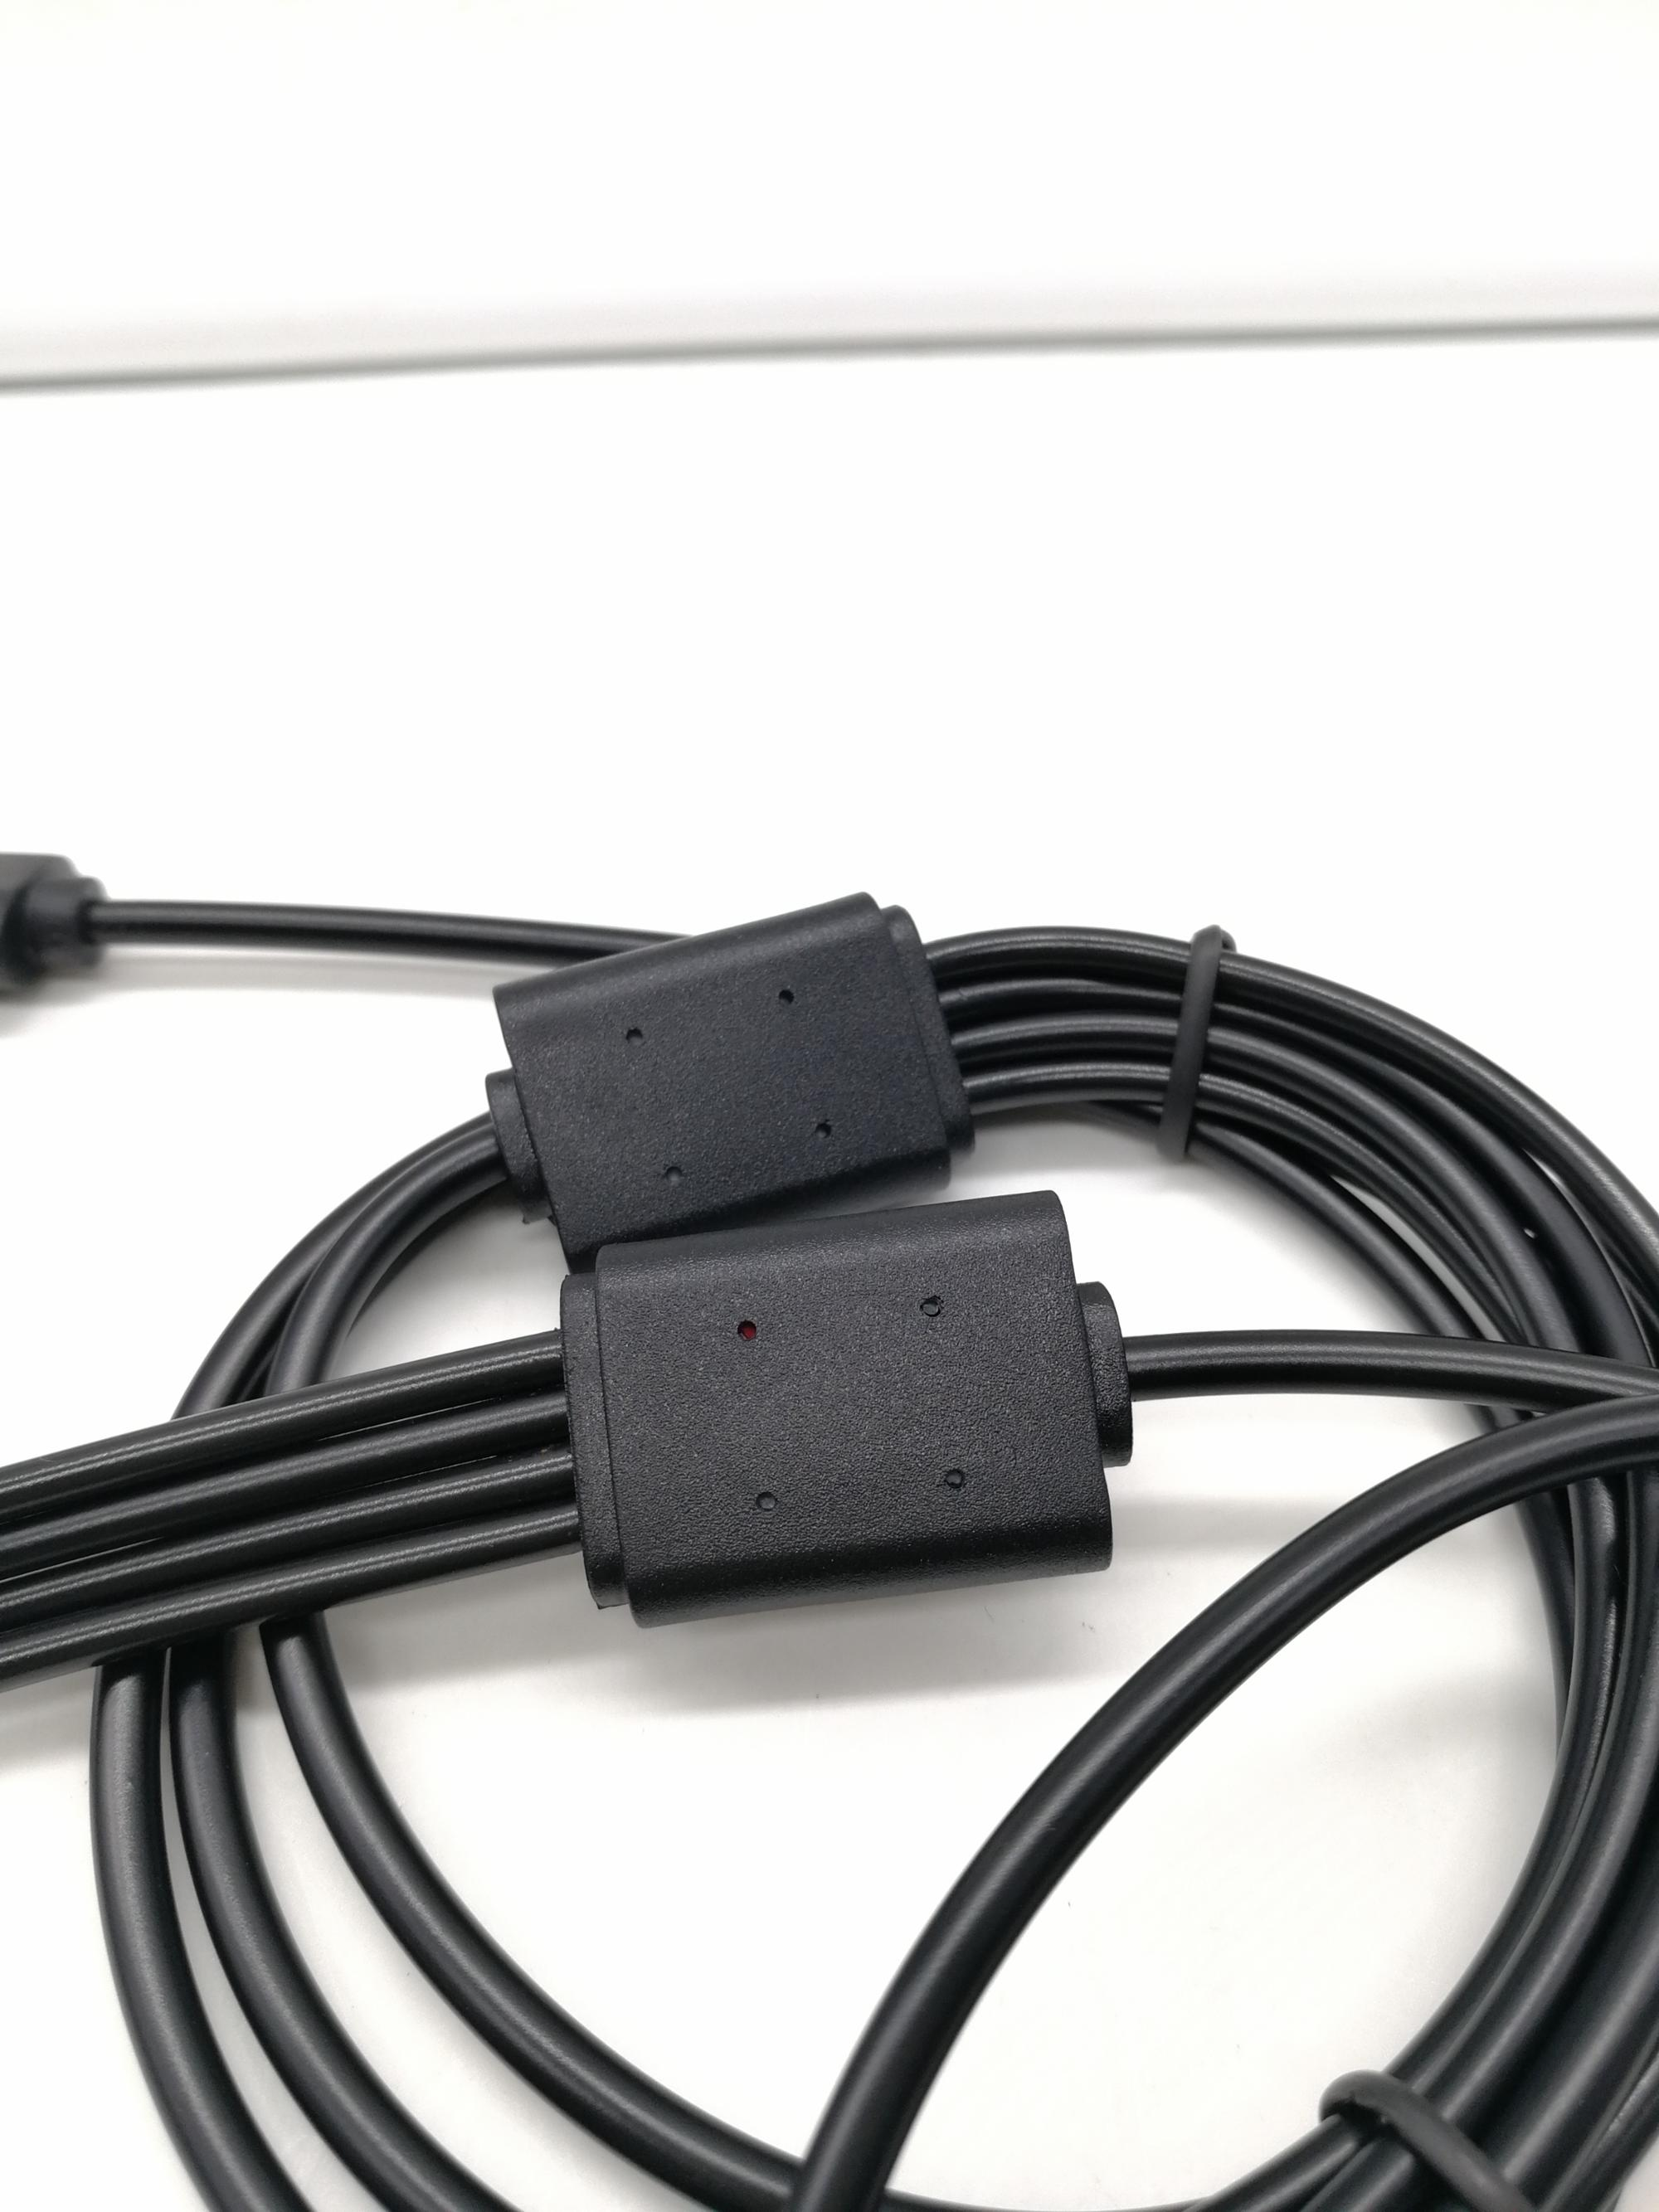 USB Charger Cable 4 trong 1 Phổ Durable Đa USB Cable Car Charger for Điện Thoại Di Động iPod